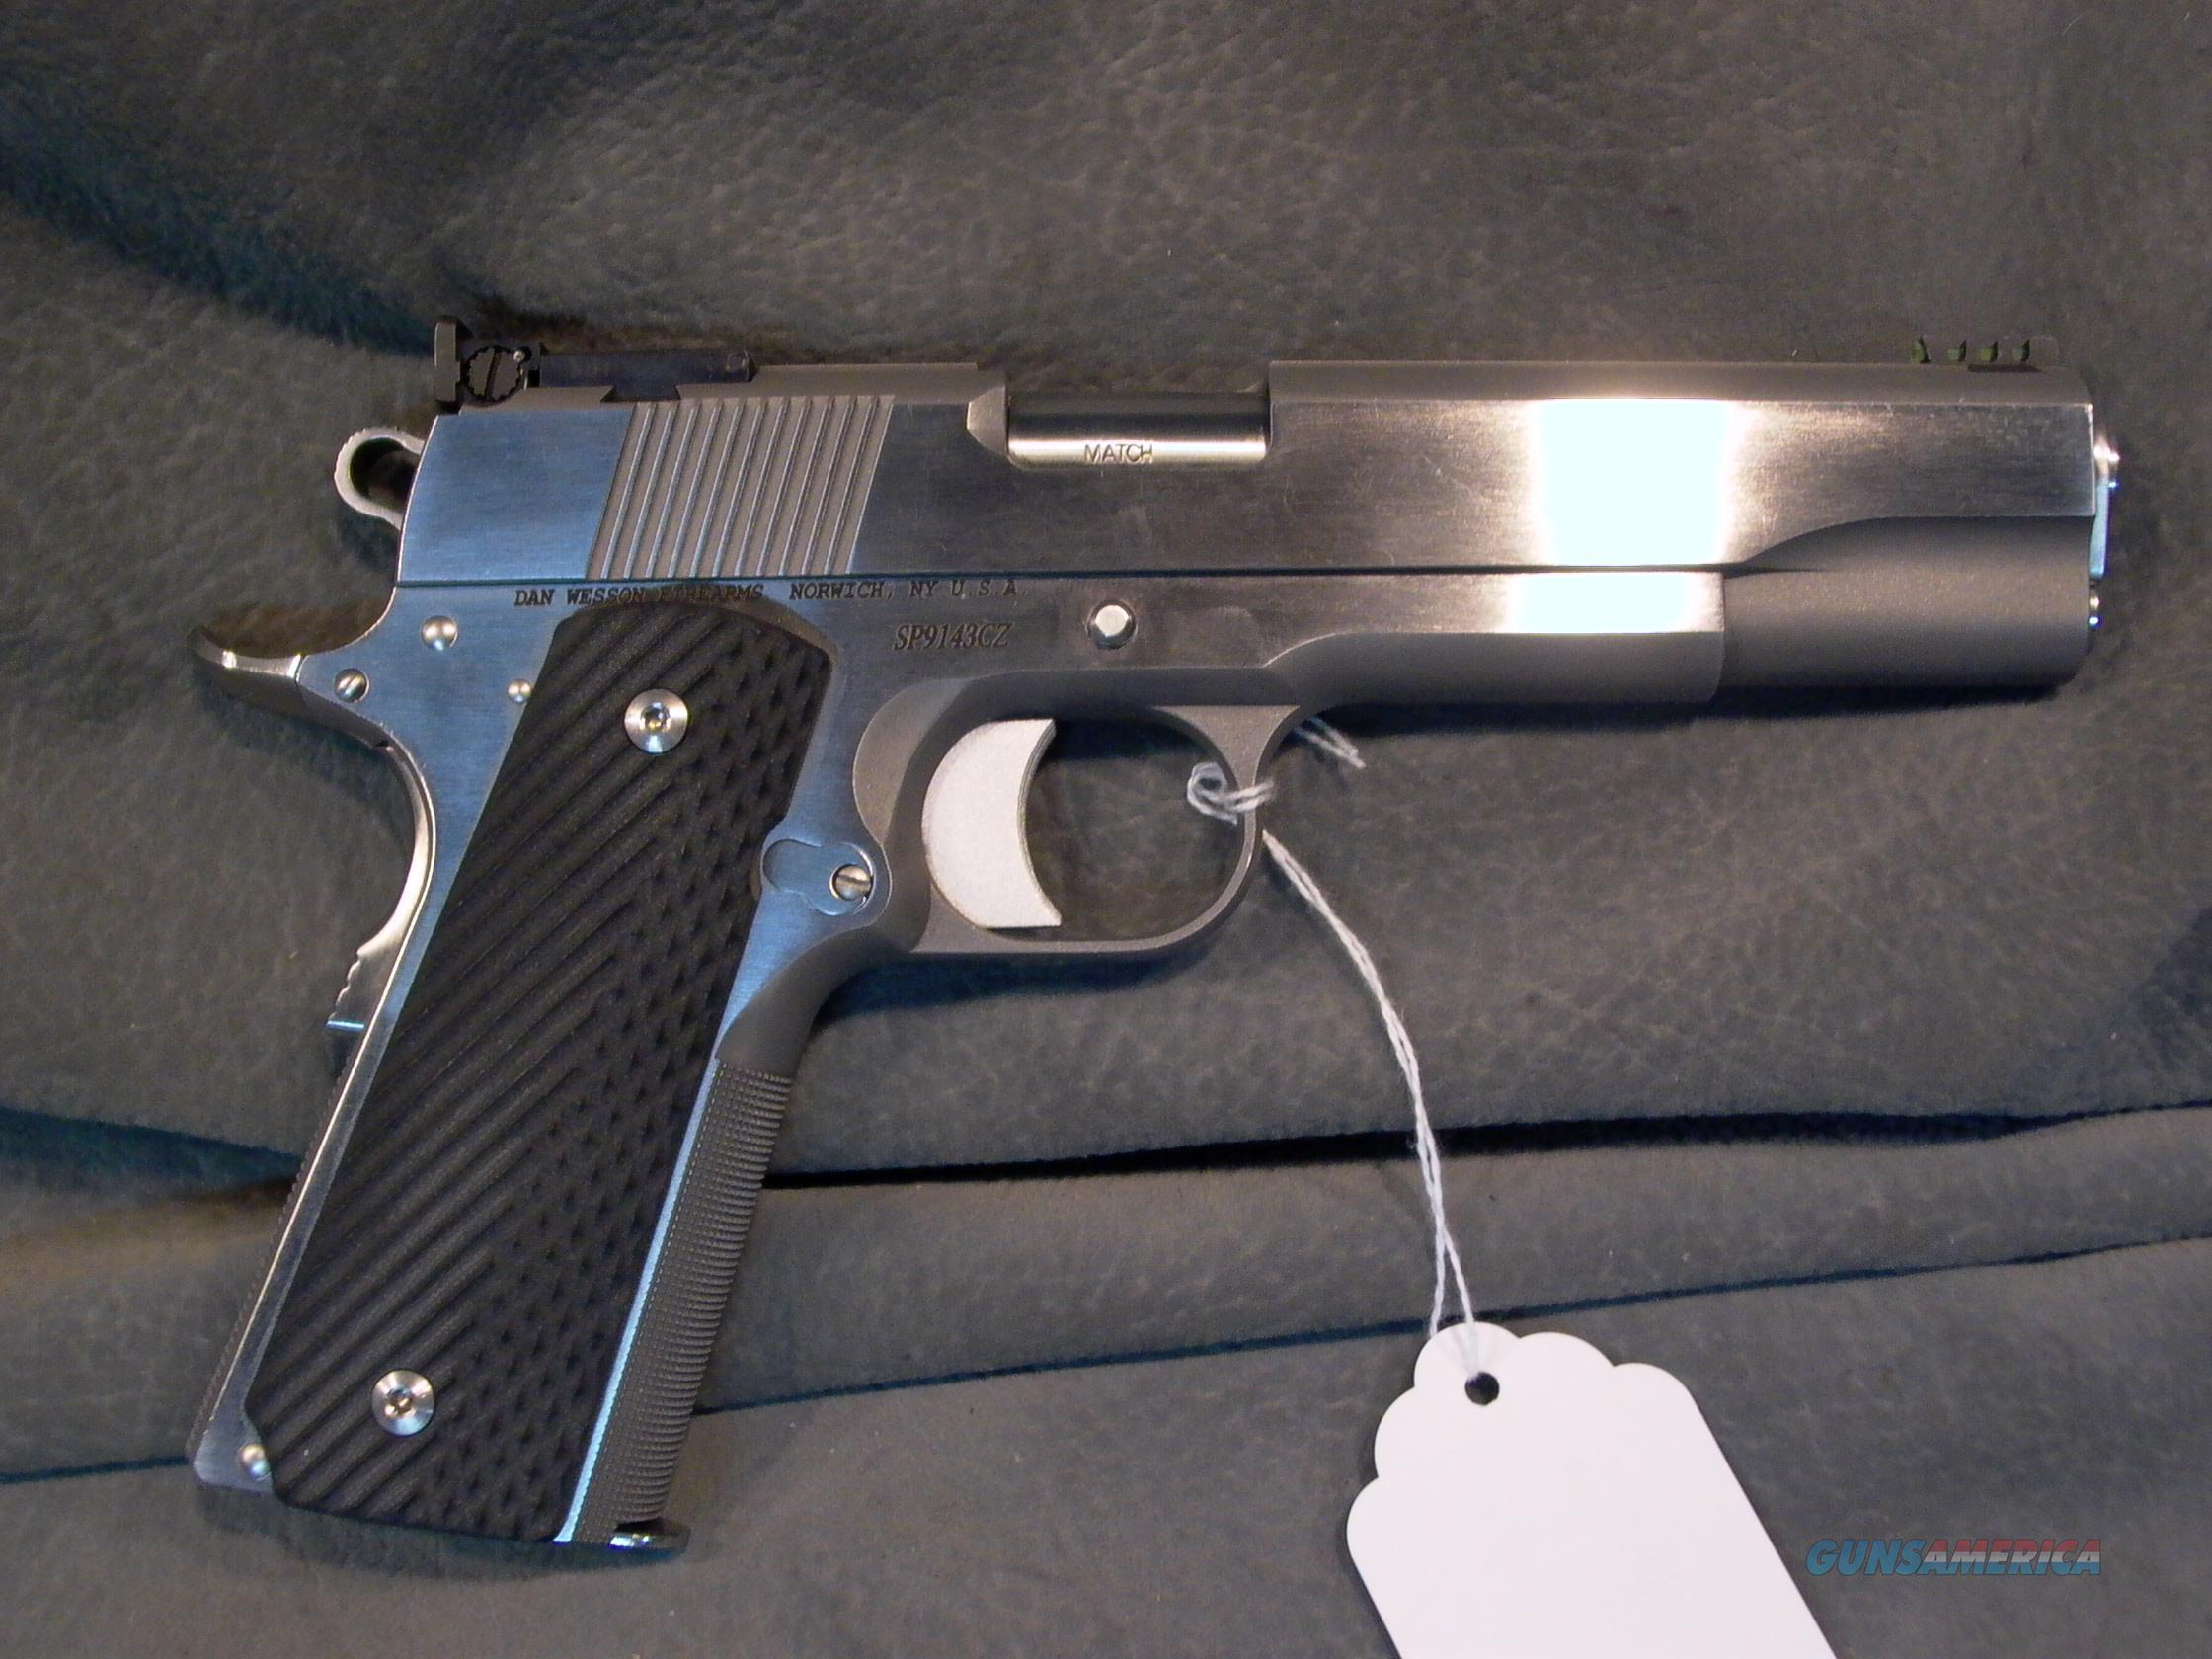 Dan Wesson Sportsman 10mm 1 of 210 made  Guns > Pistols > Dan Wesson Pistols/Revolvers > 1911 Style